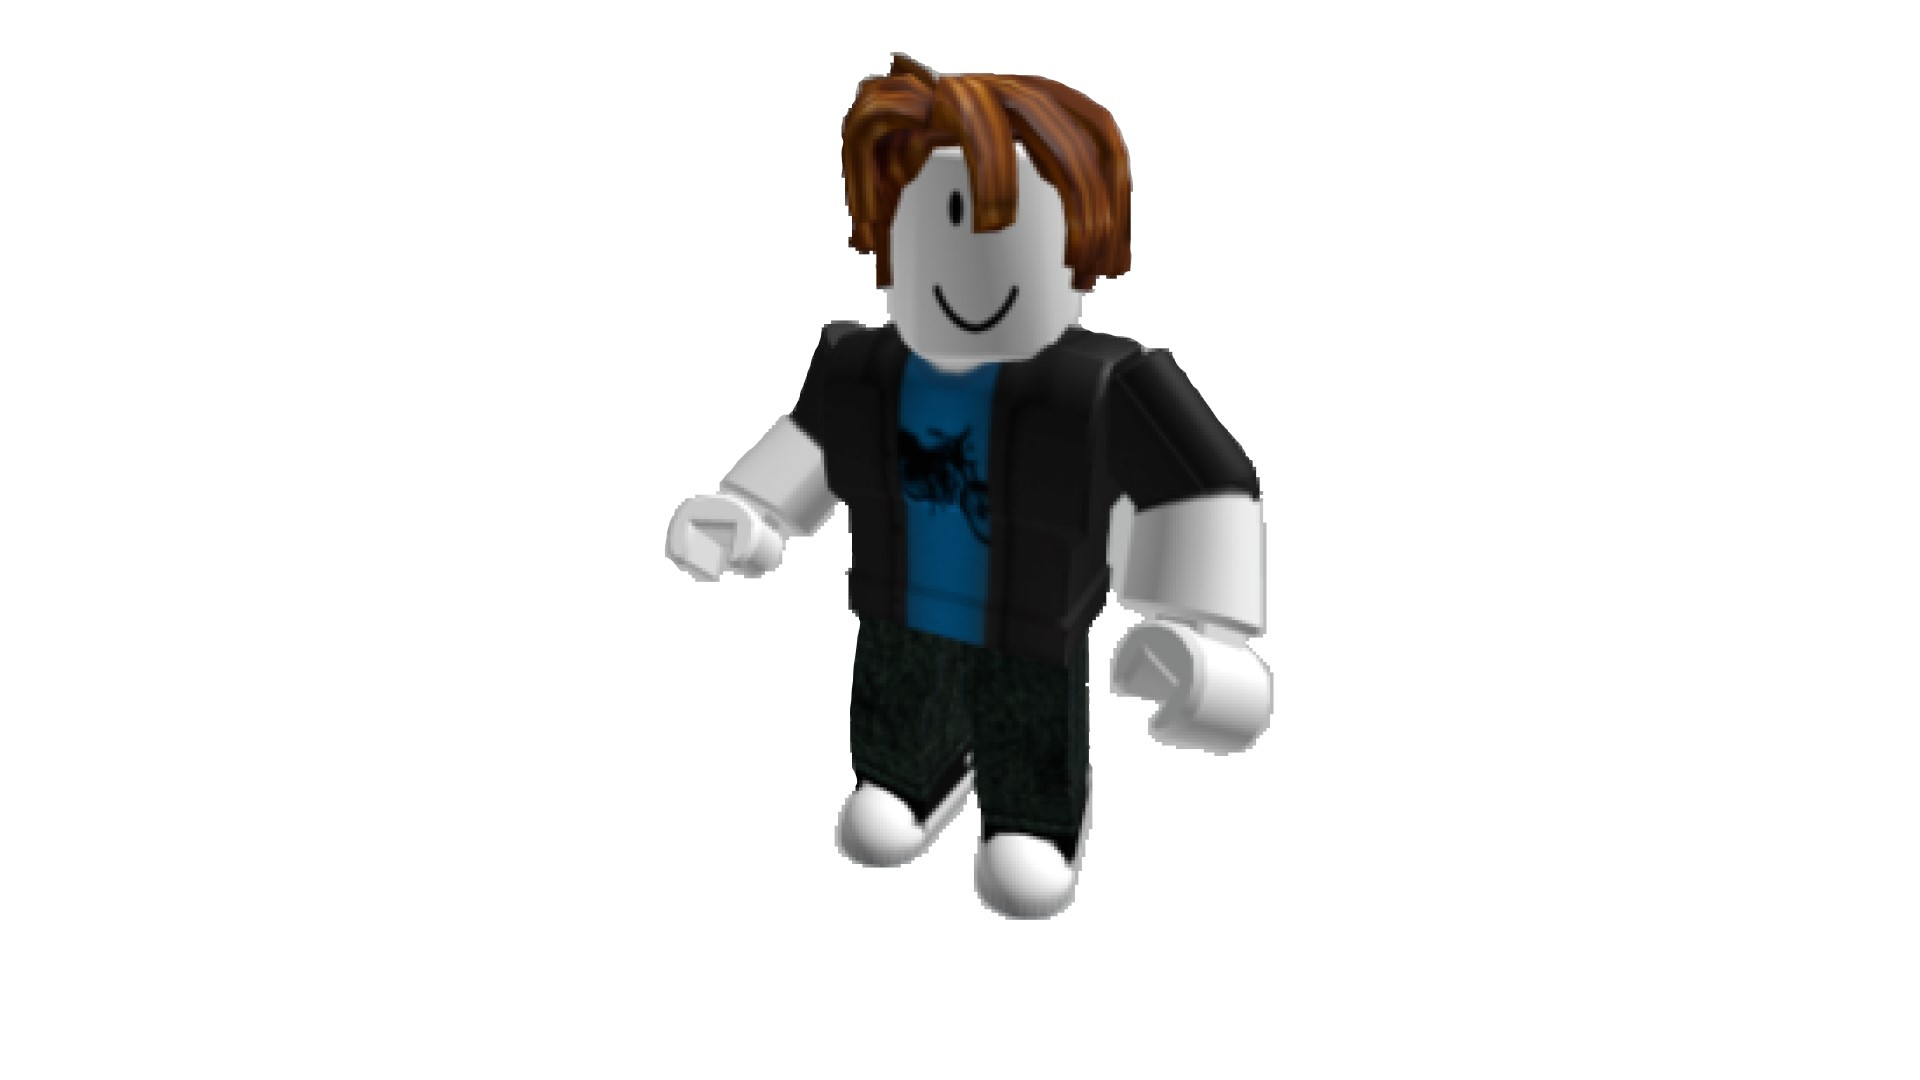 Roblox The Real Colors For A Noob Avatar Roblox Noob What Does Noob Mean In Roblox Pocket Tactics